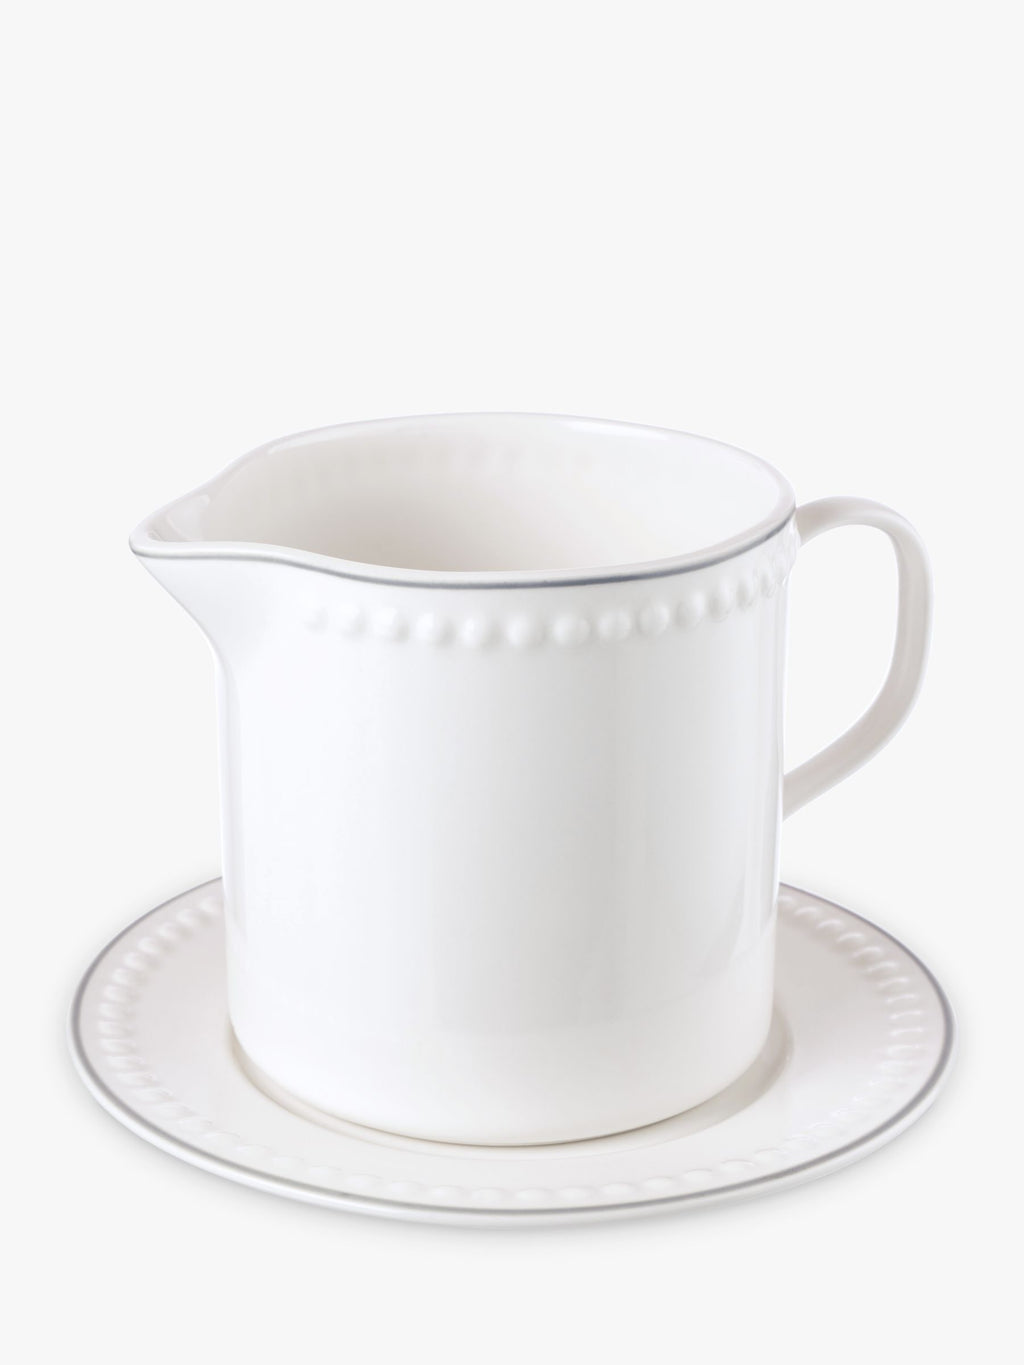 Mary Berry Signature Jug & Saucer, 500ml, White